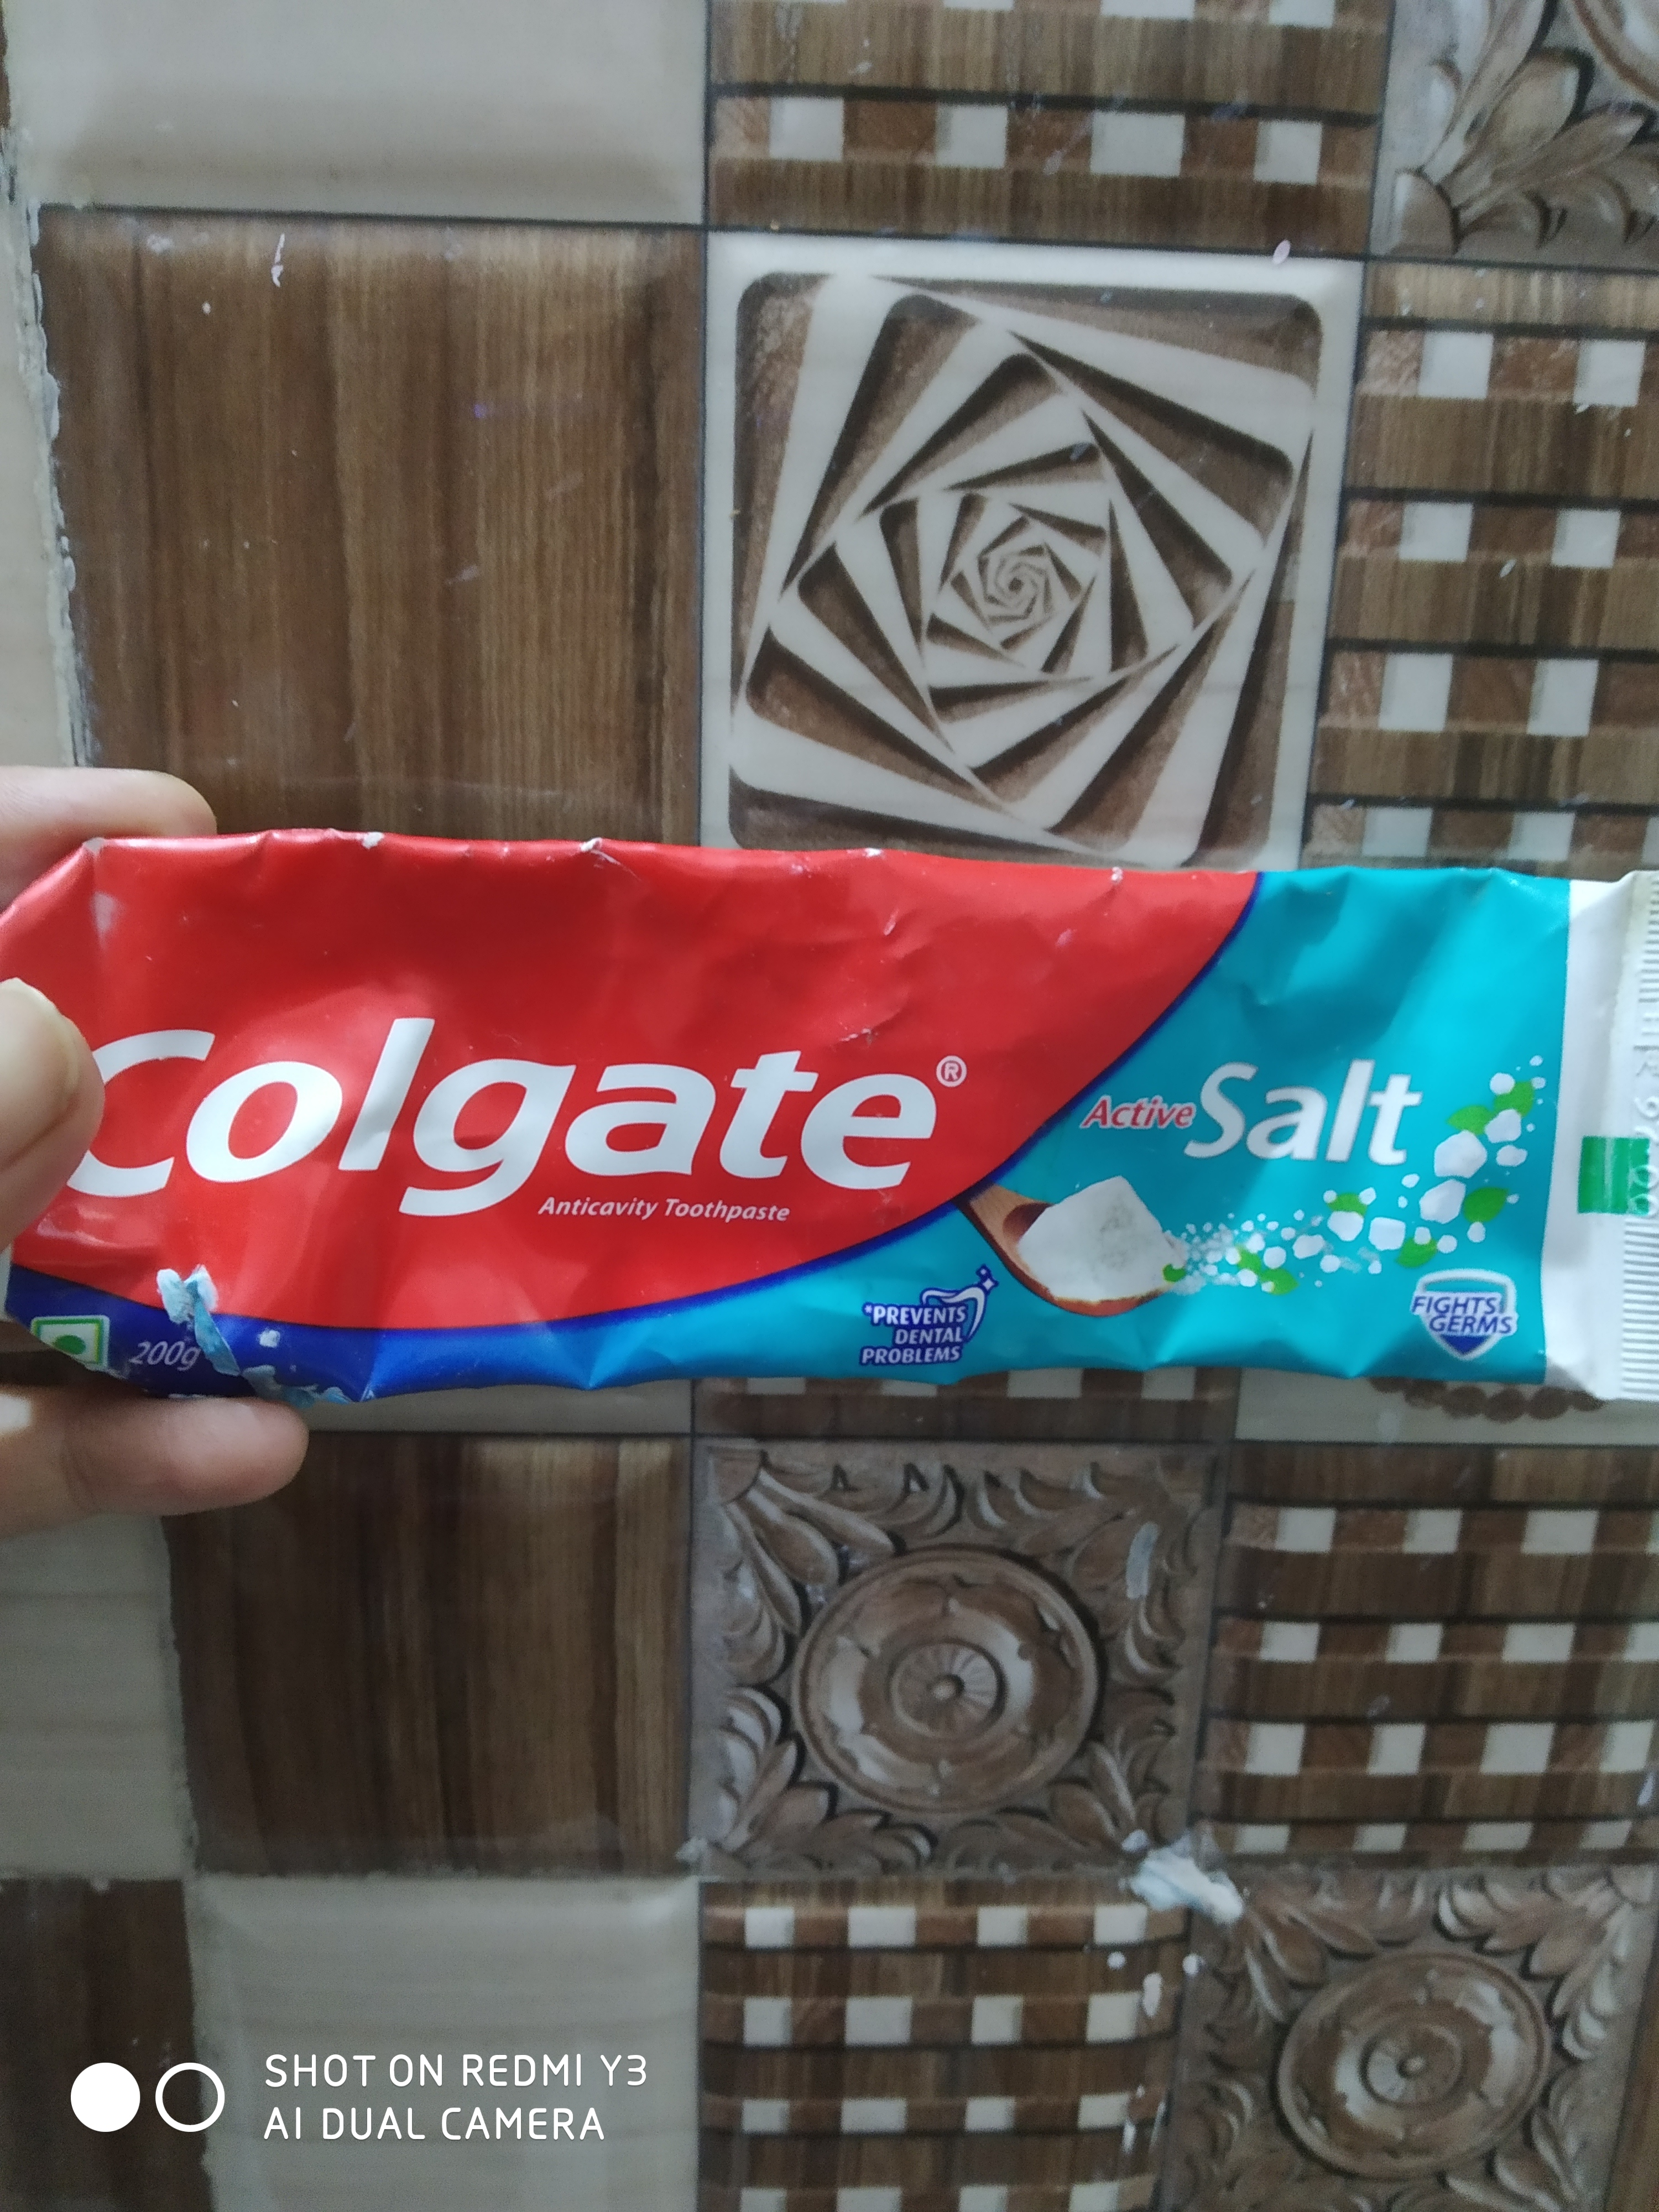 Colgate Active Salt Fight Germs Toothpaste-Effective gum care product!!-By ashima21-5